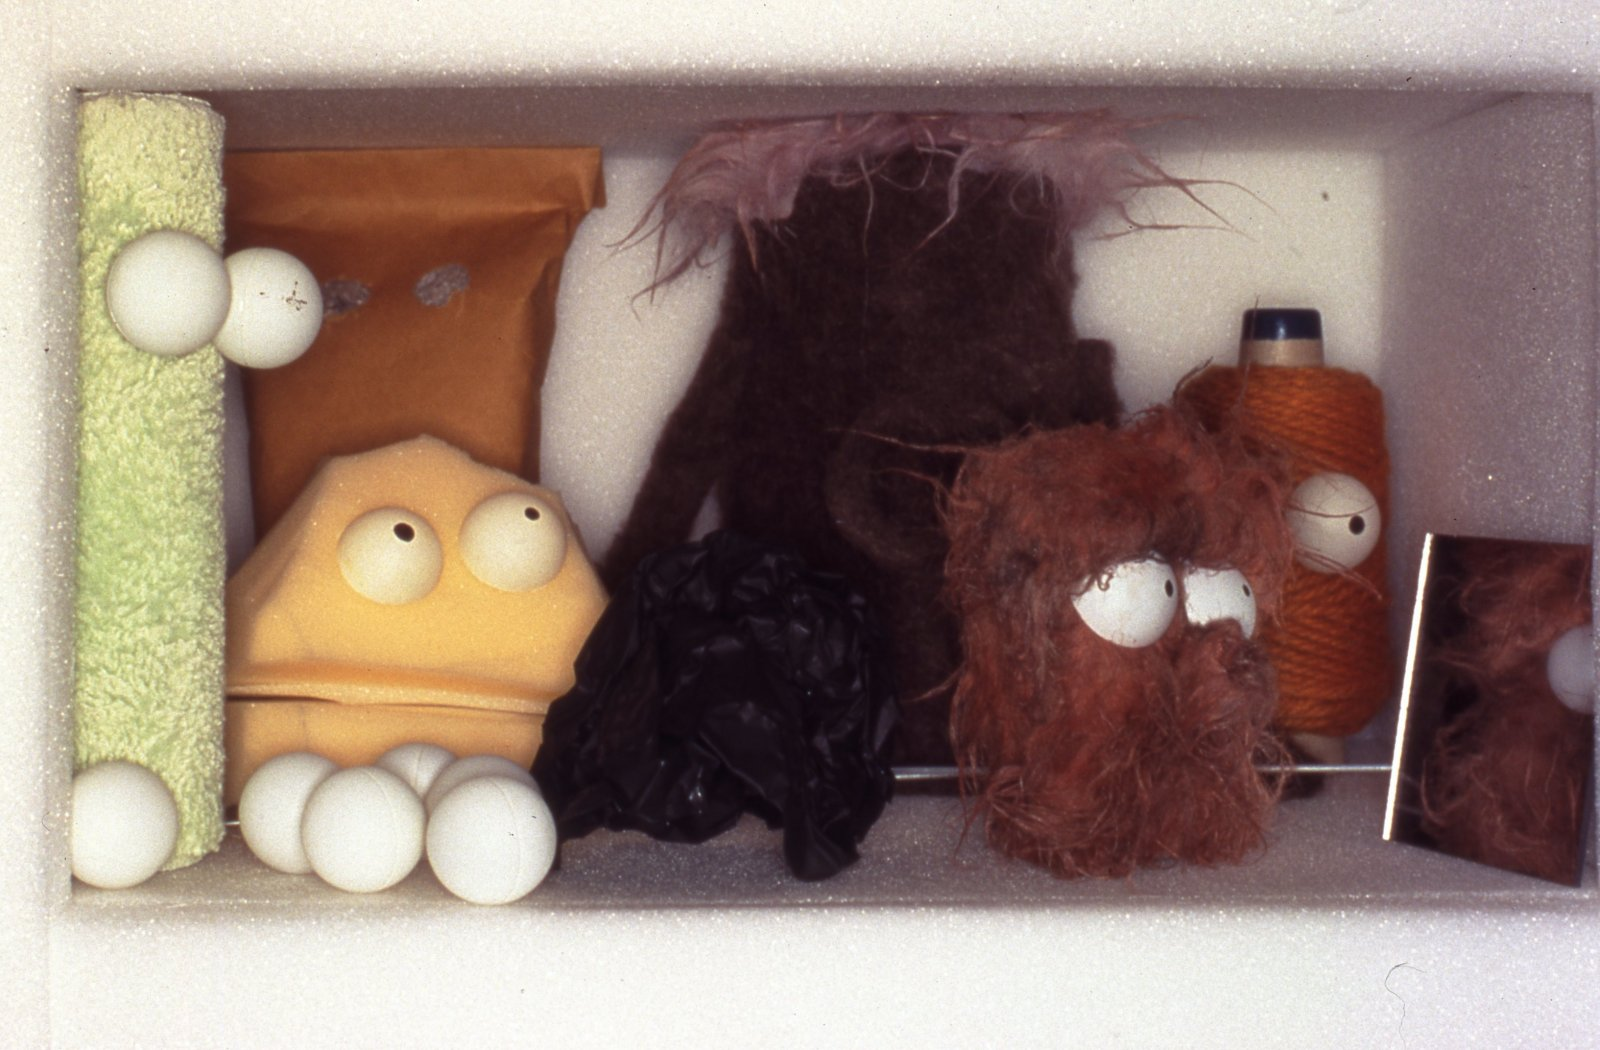 Geoffrey Farmer,Puppet Kit (Personality Workshop) (detail),2001, crate, various media and video, dimensions variable